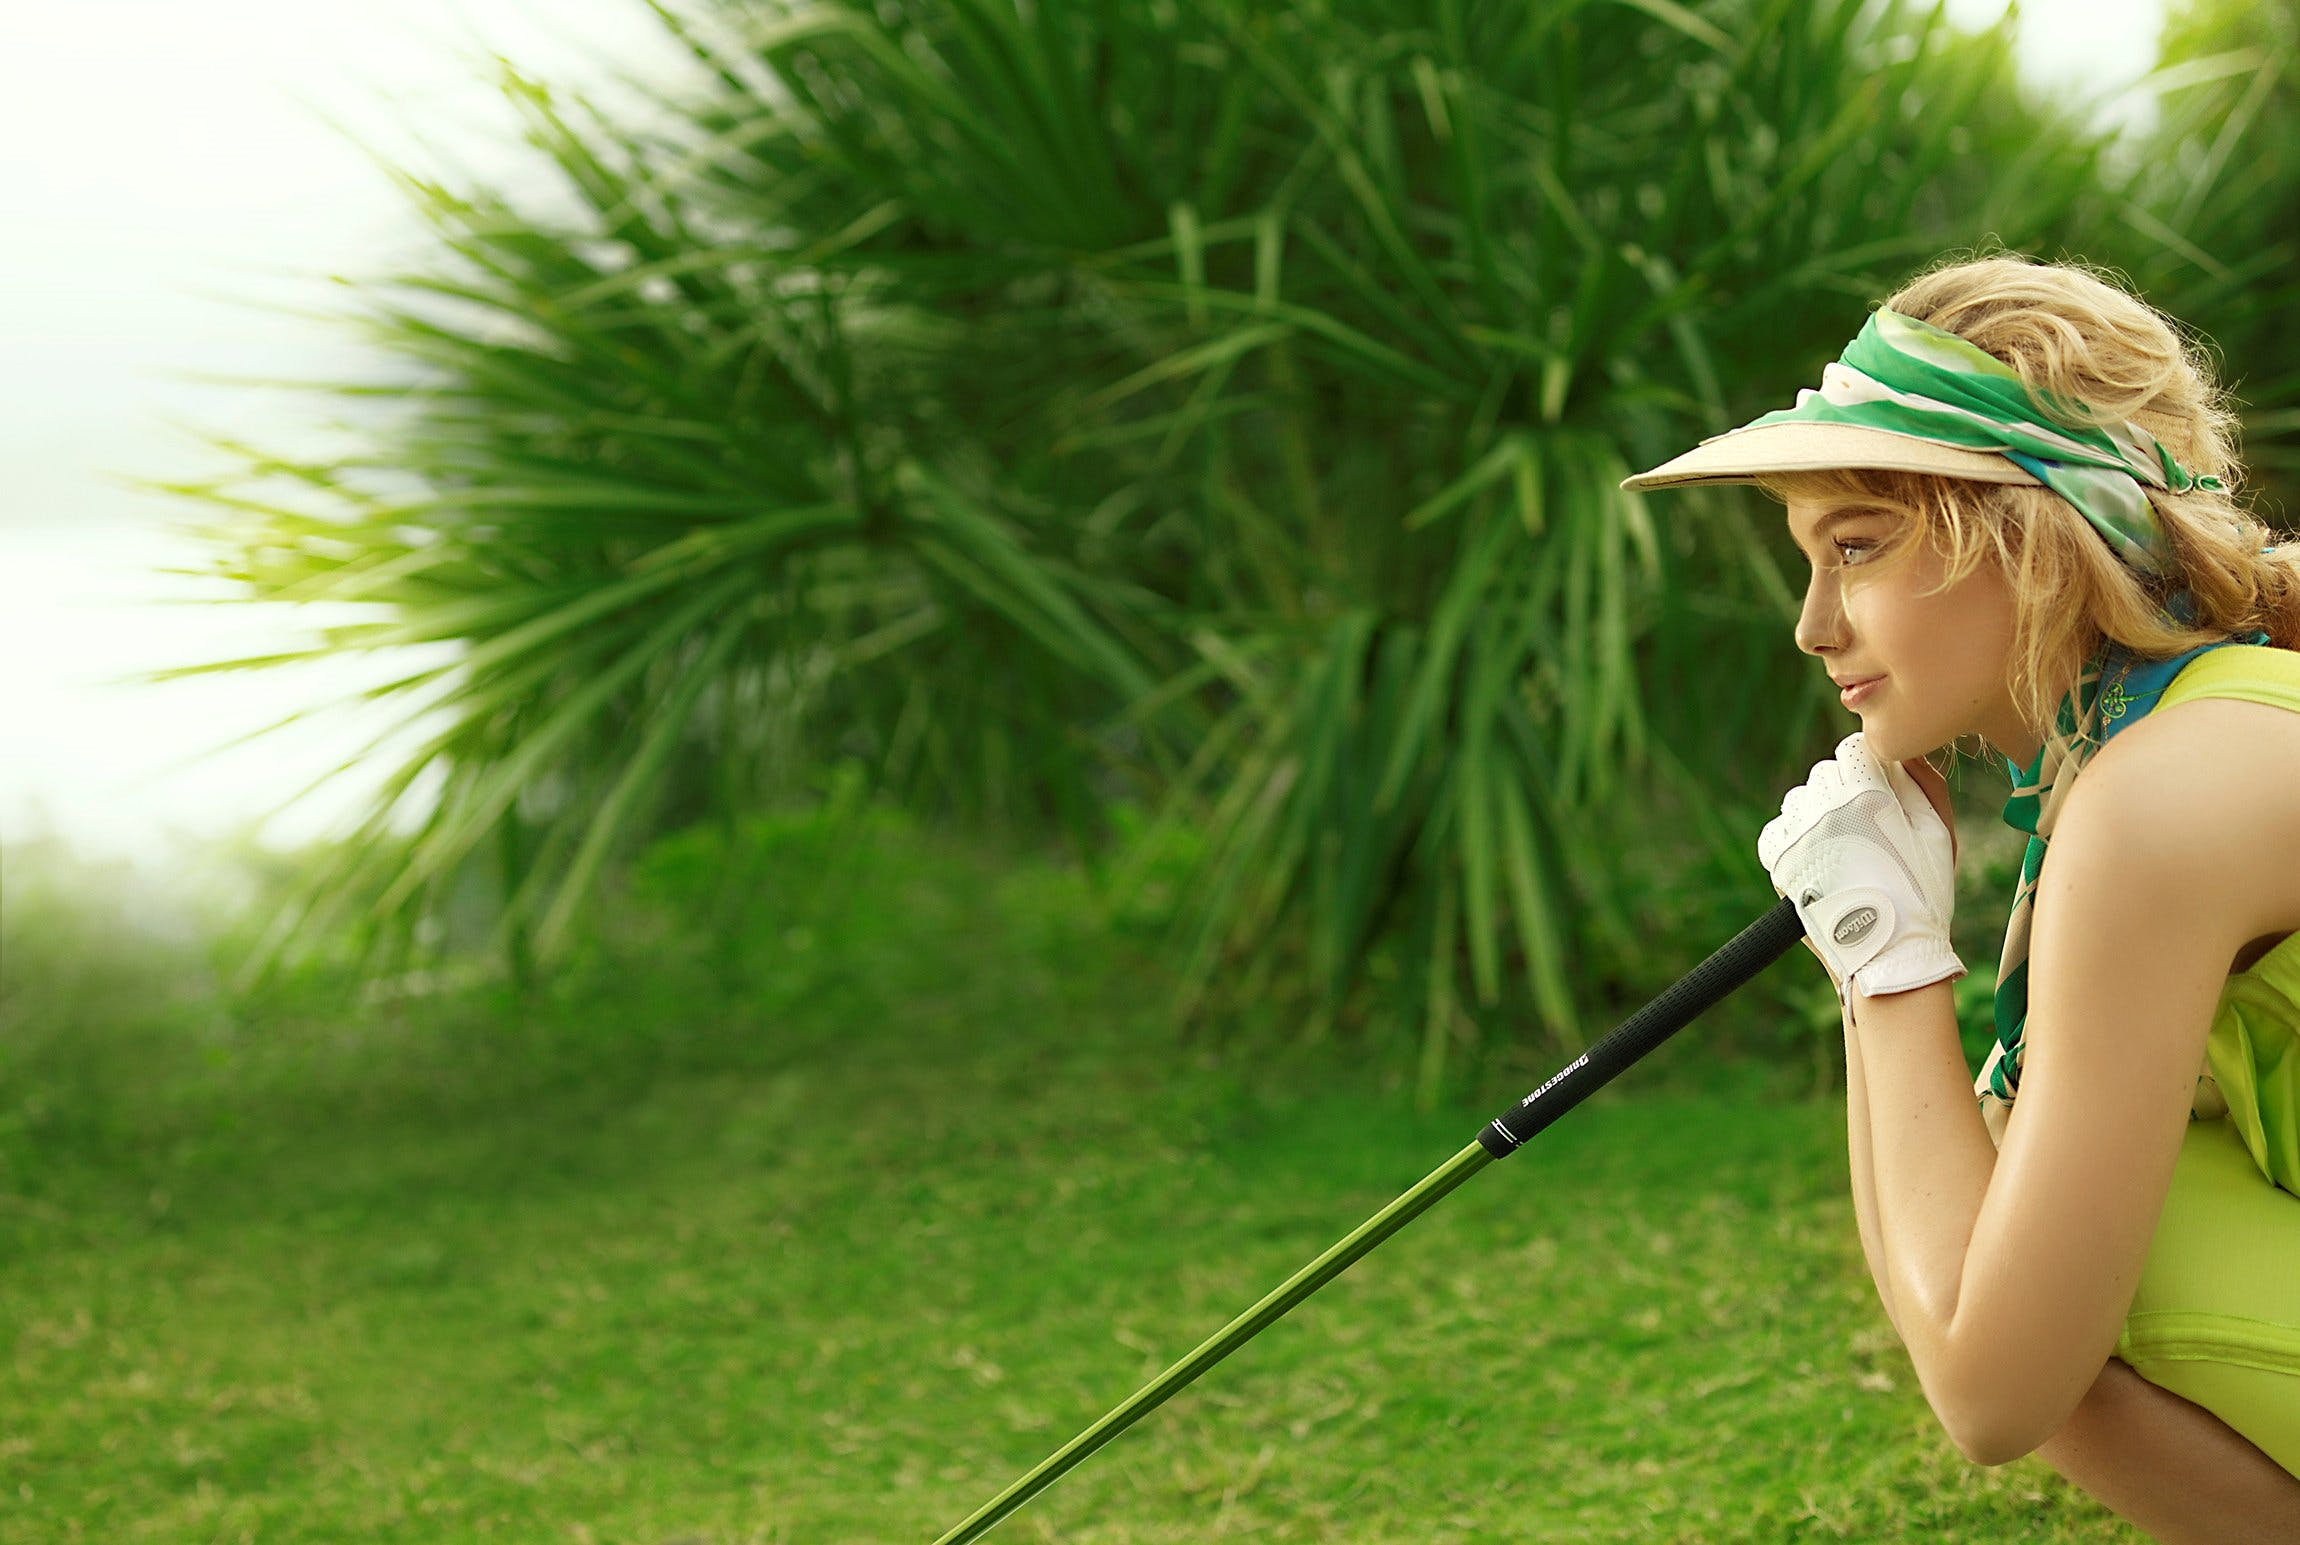 Whitsunday Green Club (Golf) Logo and Images